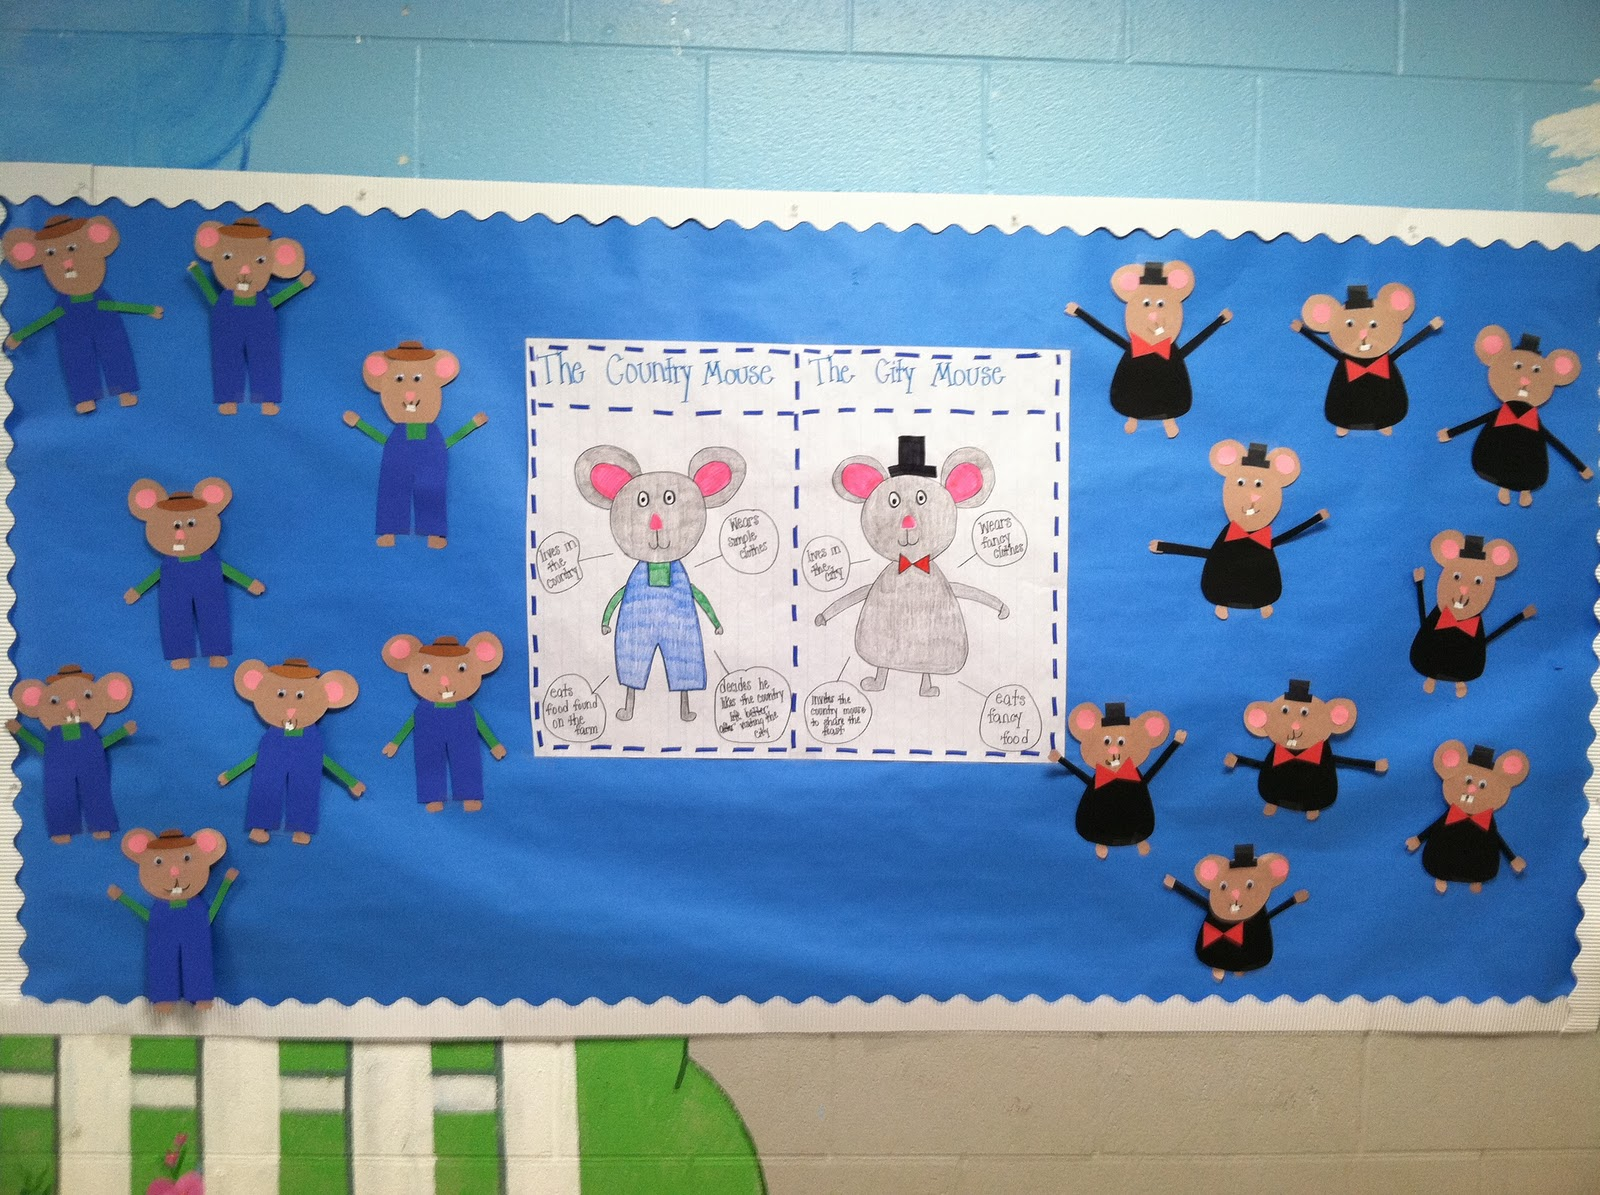 venn diagram bulletin board directv whole home dvr service wiring life in first grade last week pictures